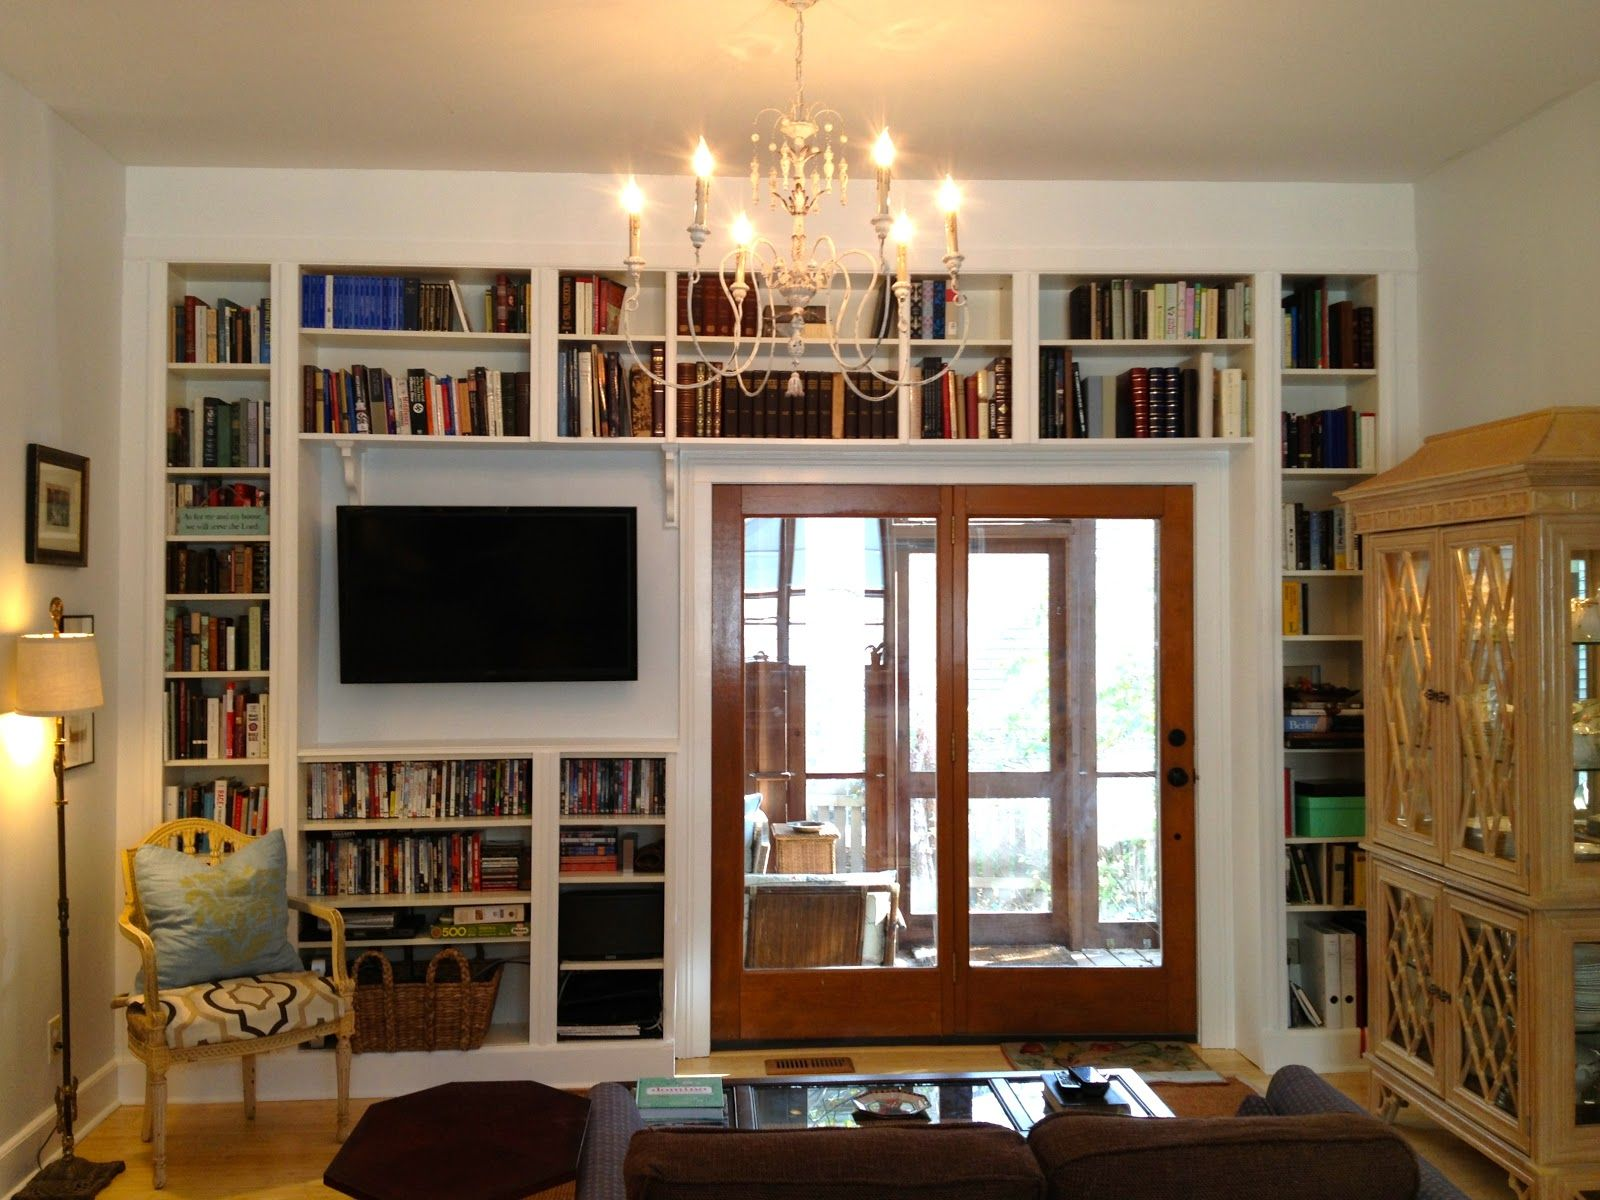 Wonderful Making Built In Shelves From Ikea Bookshelves | Built In Bookshelves Before  U0026 After: Ikea Part 28